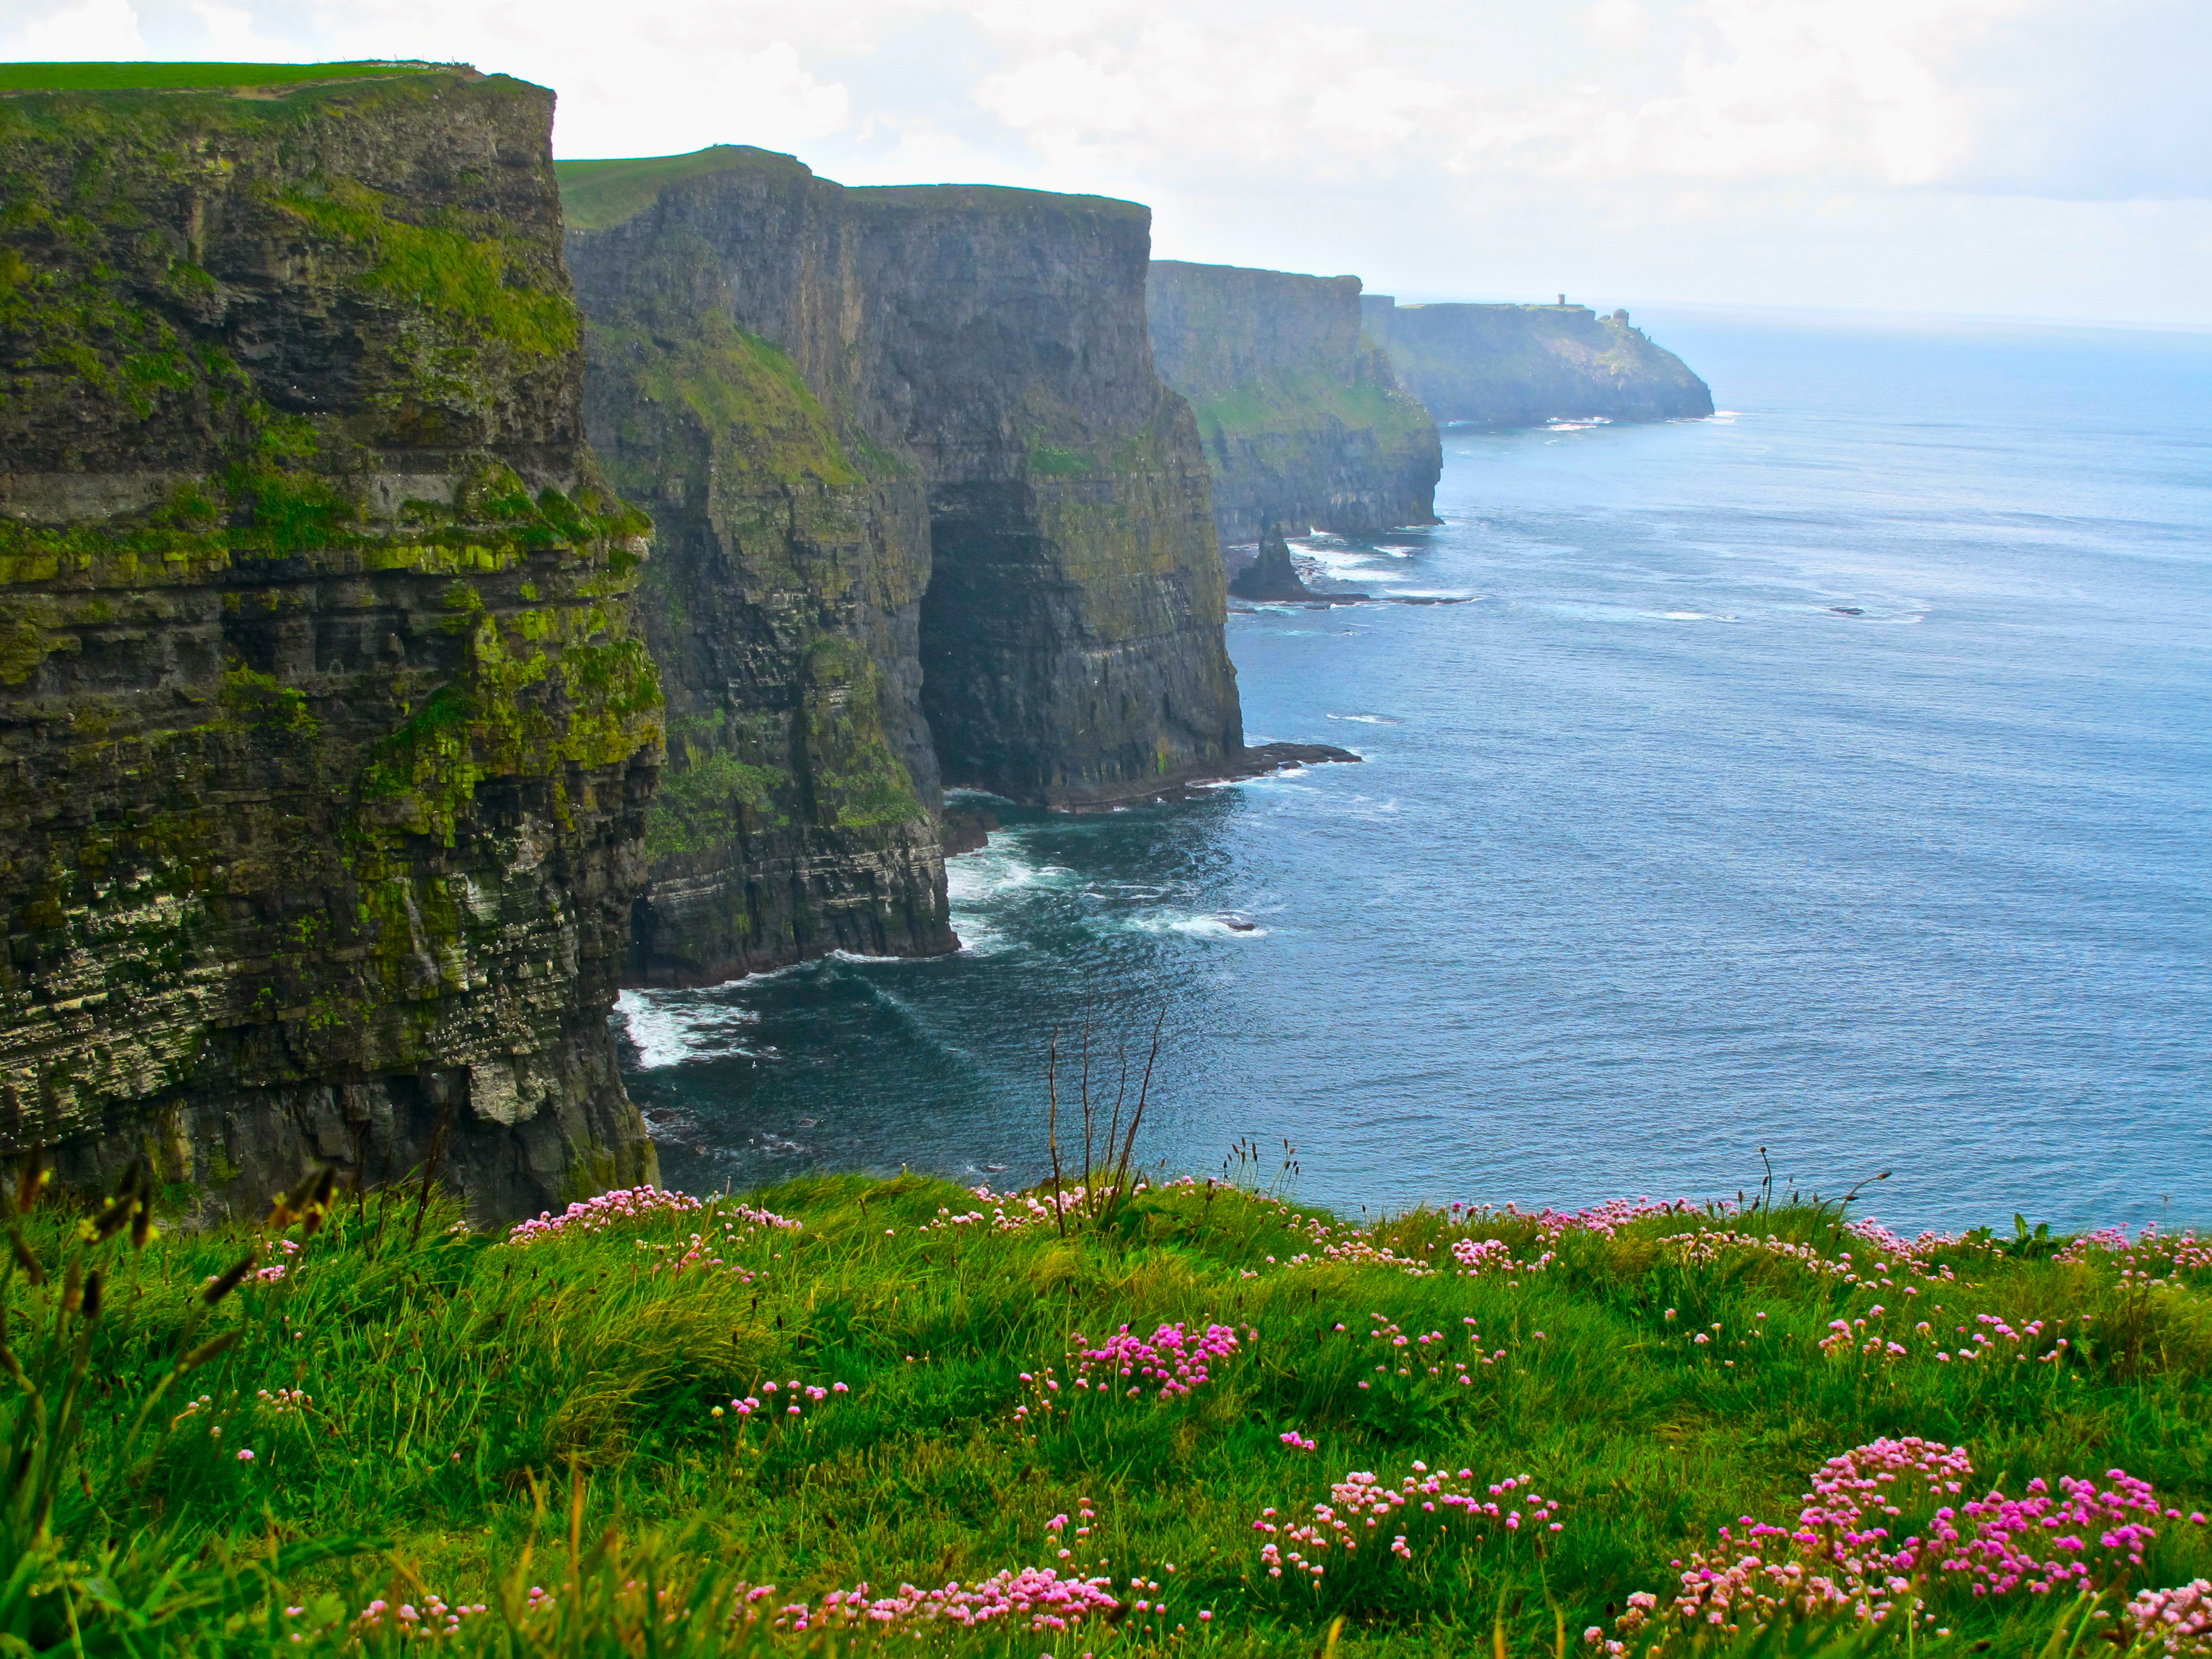 1 timothy 3 16 deuteronomy 33 27 hag s head cliffs of moher galway bay mal summer setting - Cliffs of moher pictures ...